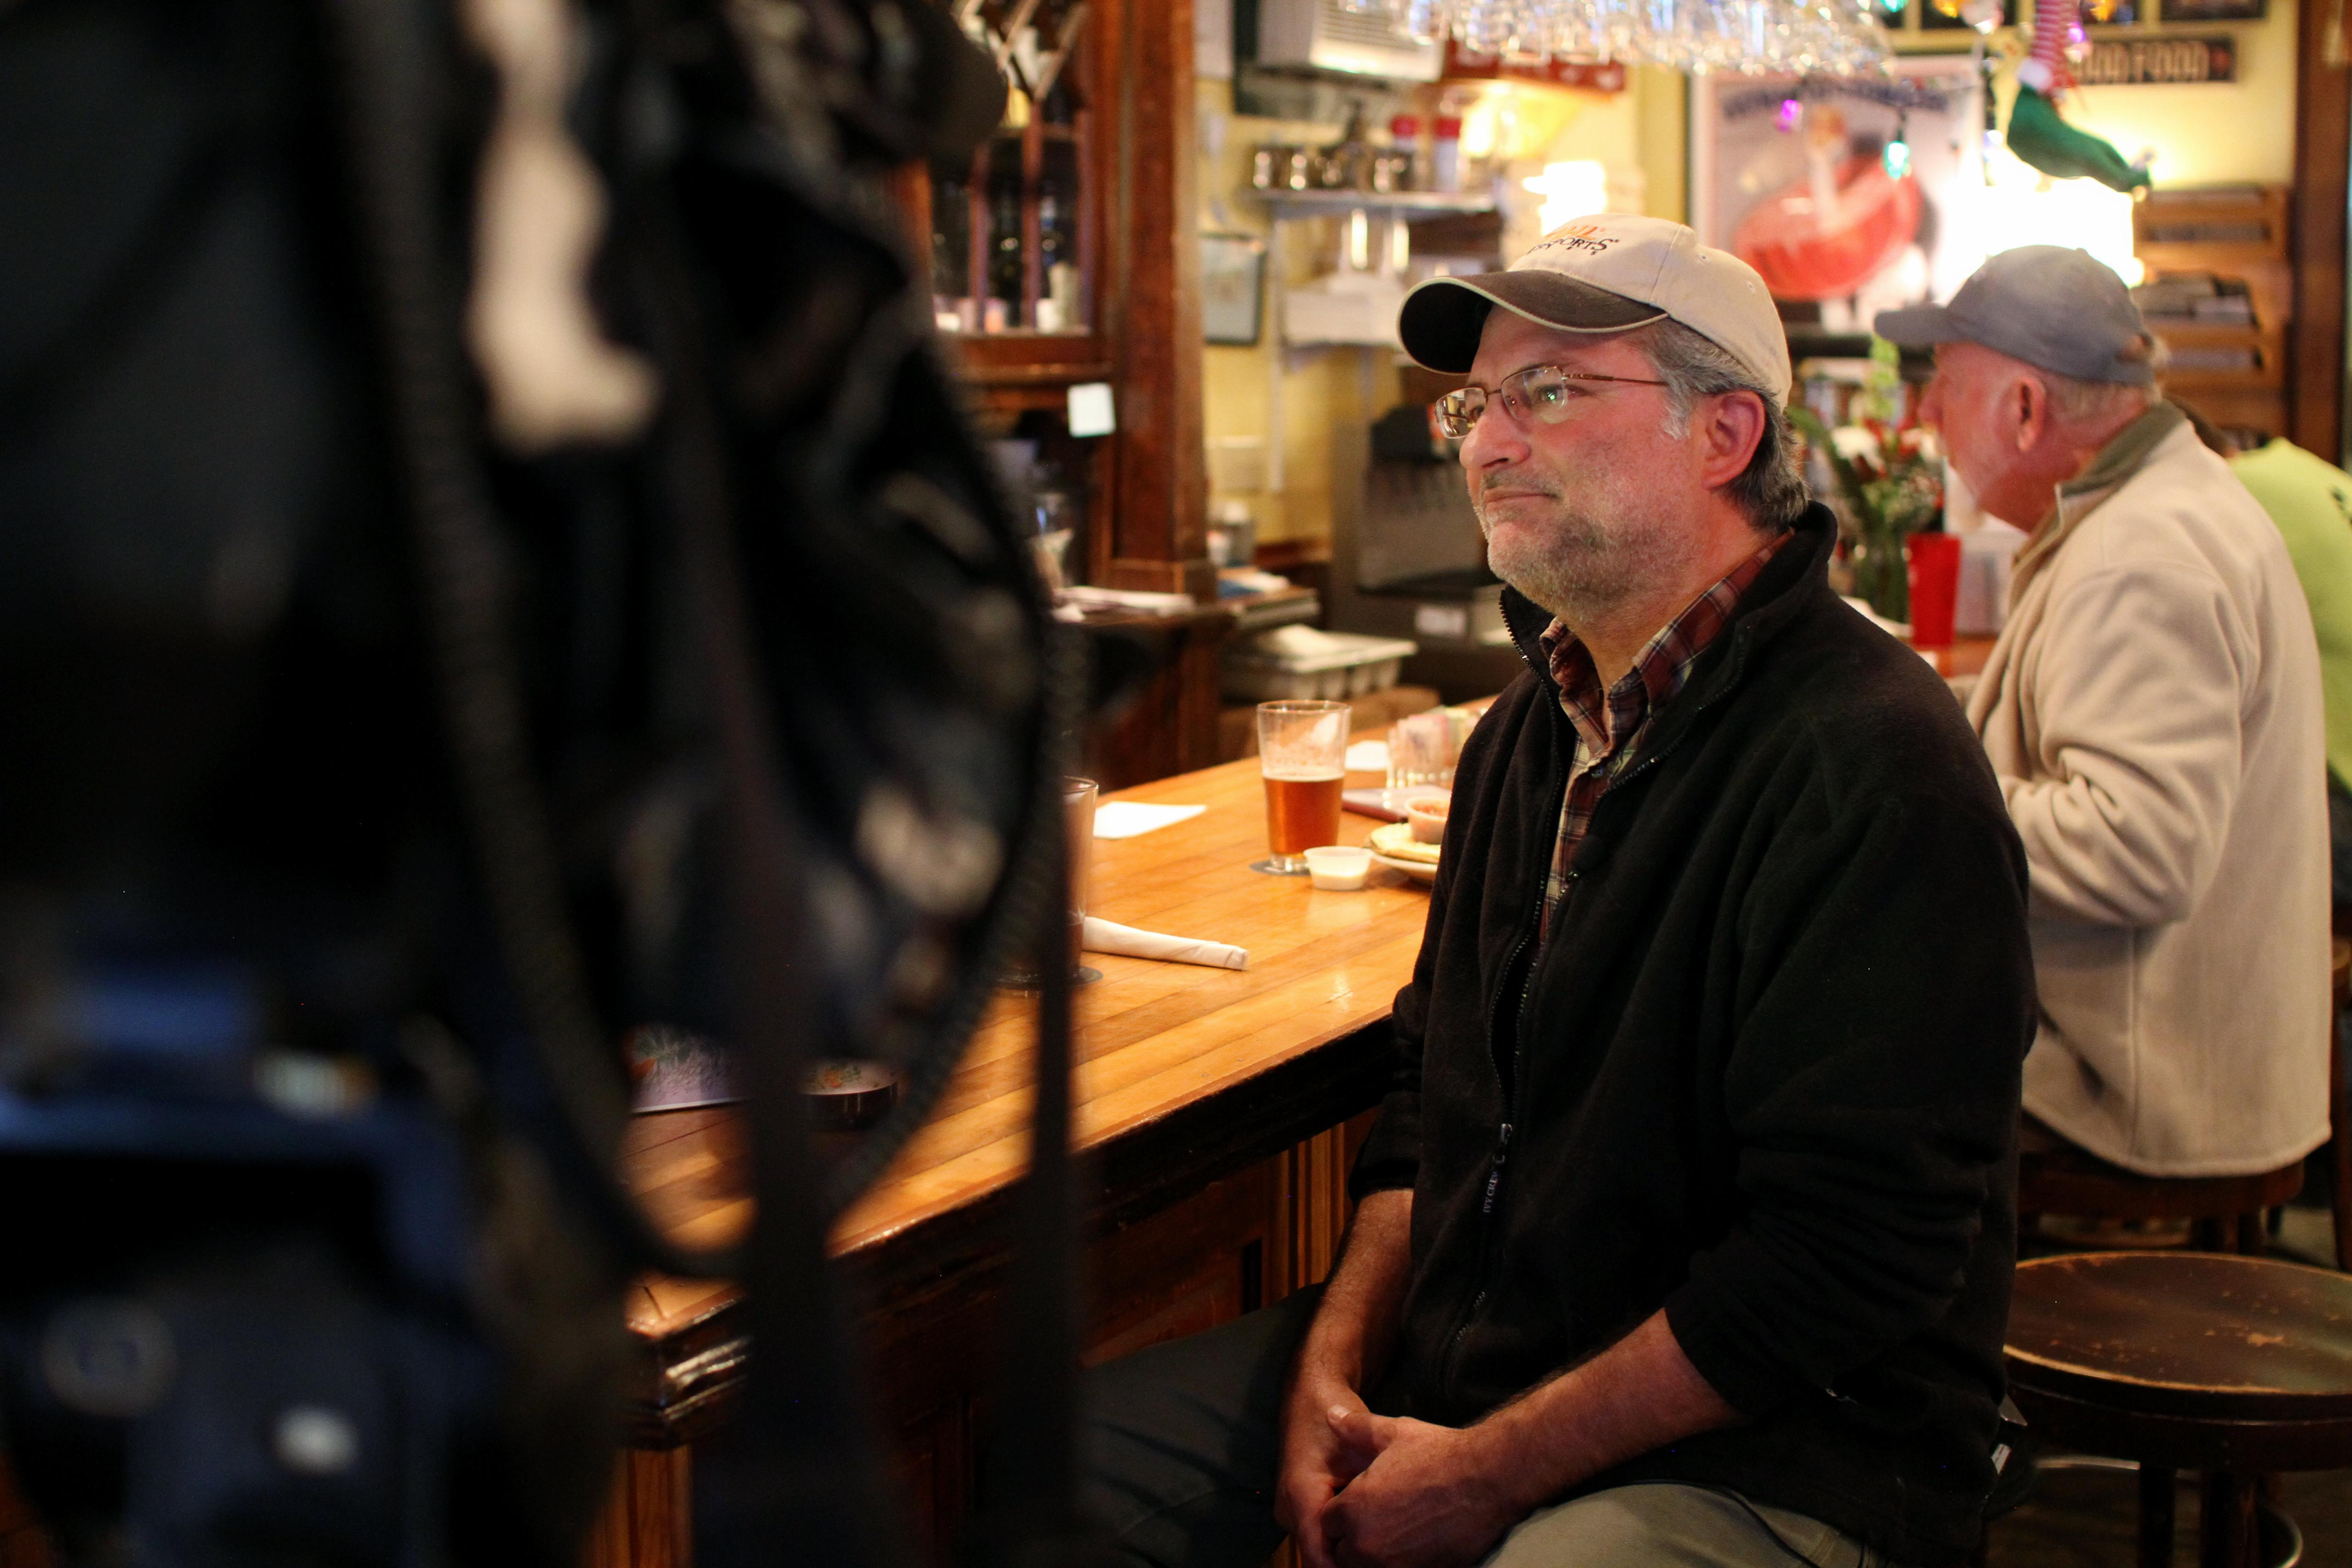 Blue Mountain Pizza customer Bill Tilson speaks with News 13 in Dec. 2017. (Photo credit: WLOS Staff)